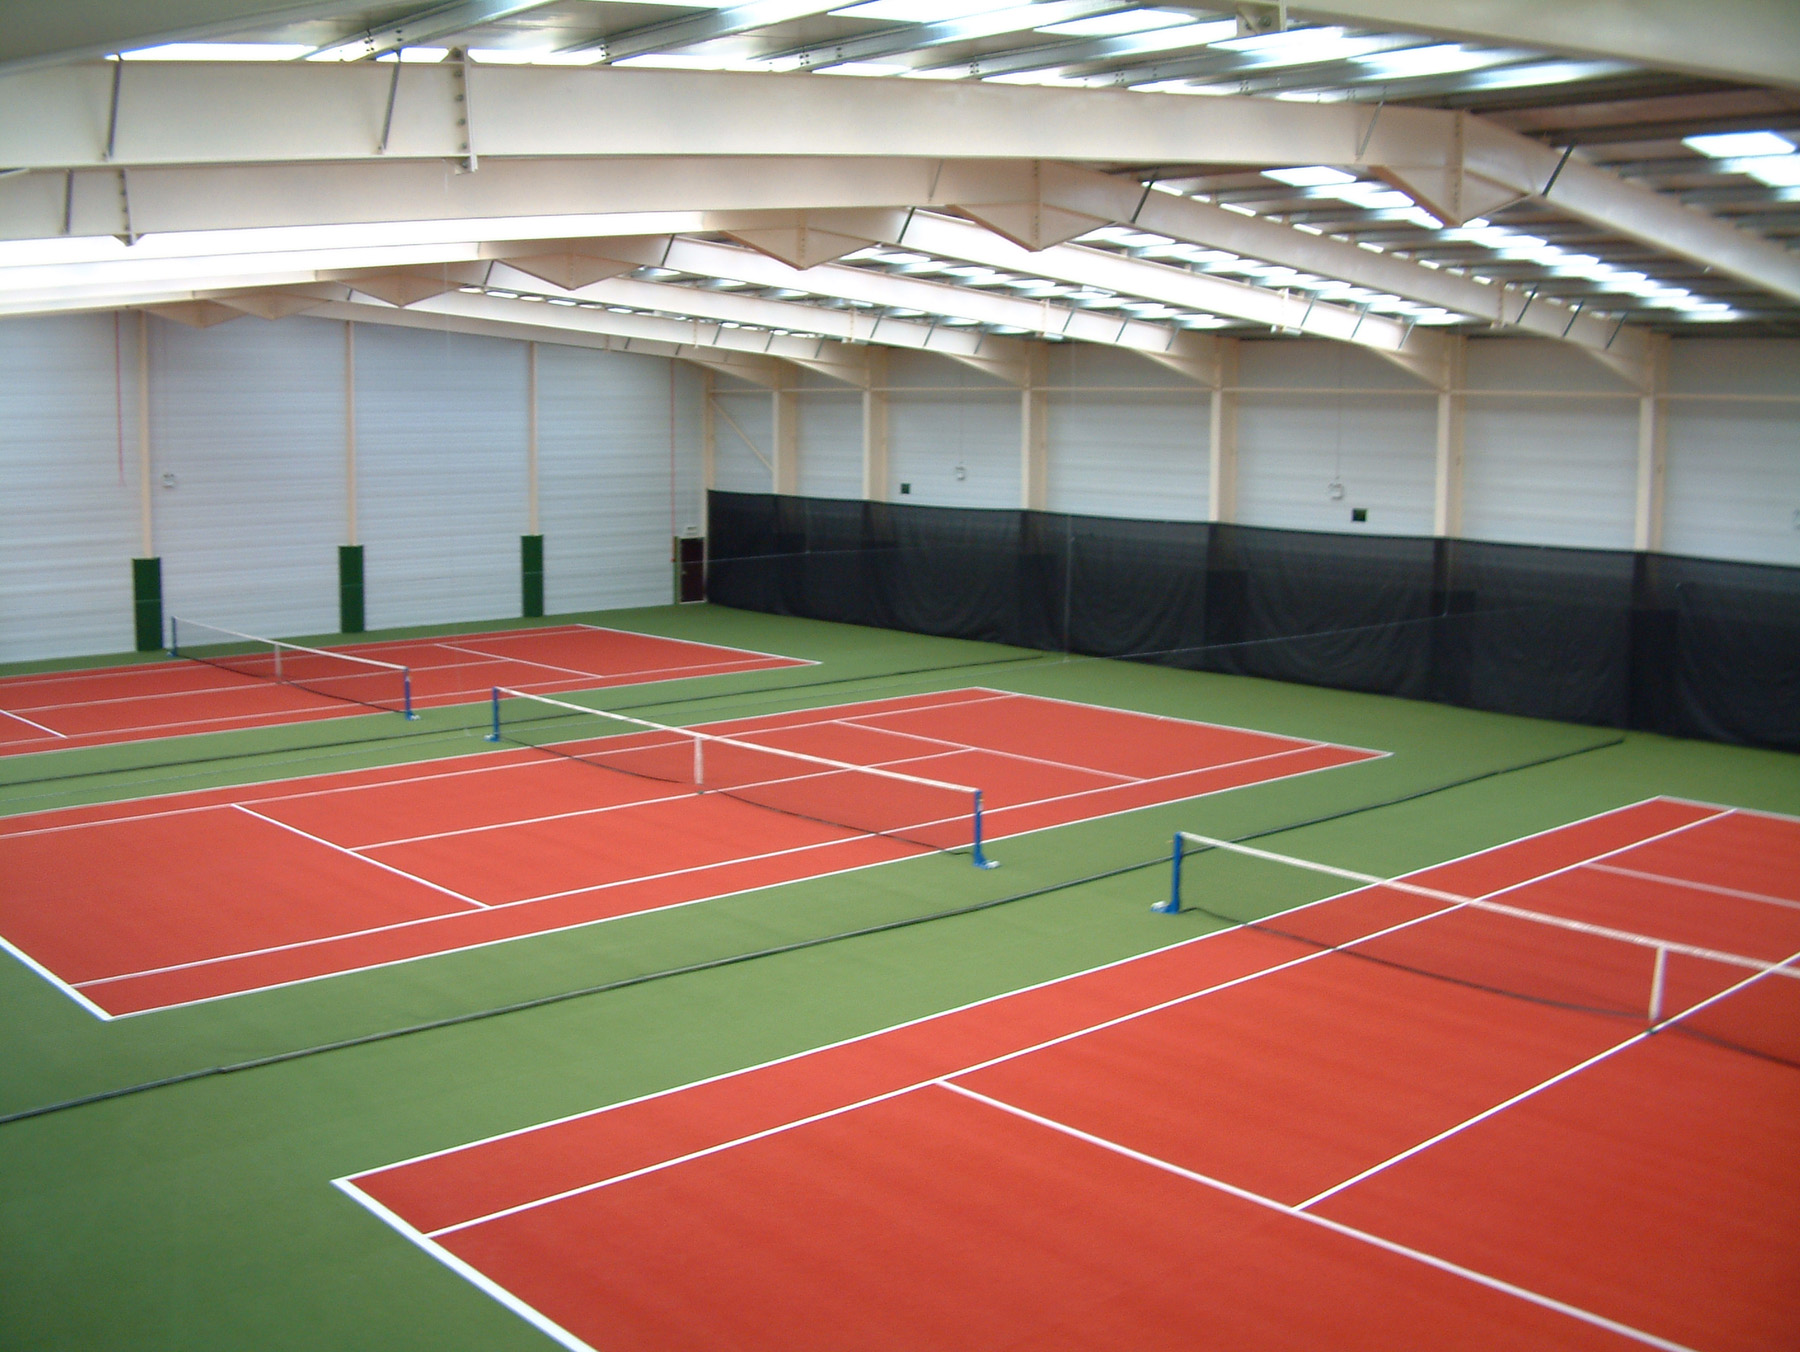 Matchplay 2 sports surfaces from ETC Sports Surfaces are affordable, hardwearing and suitable for indoor or outdoor use.